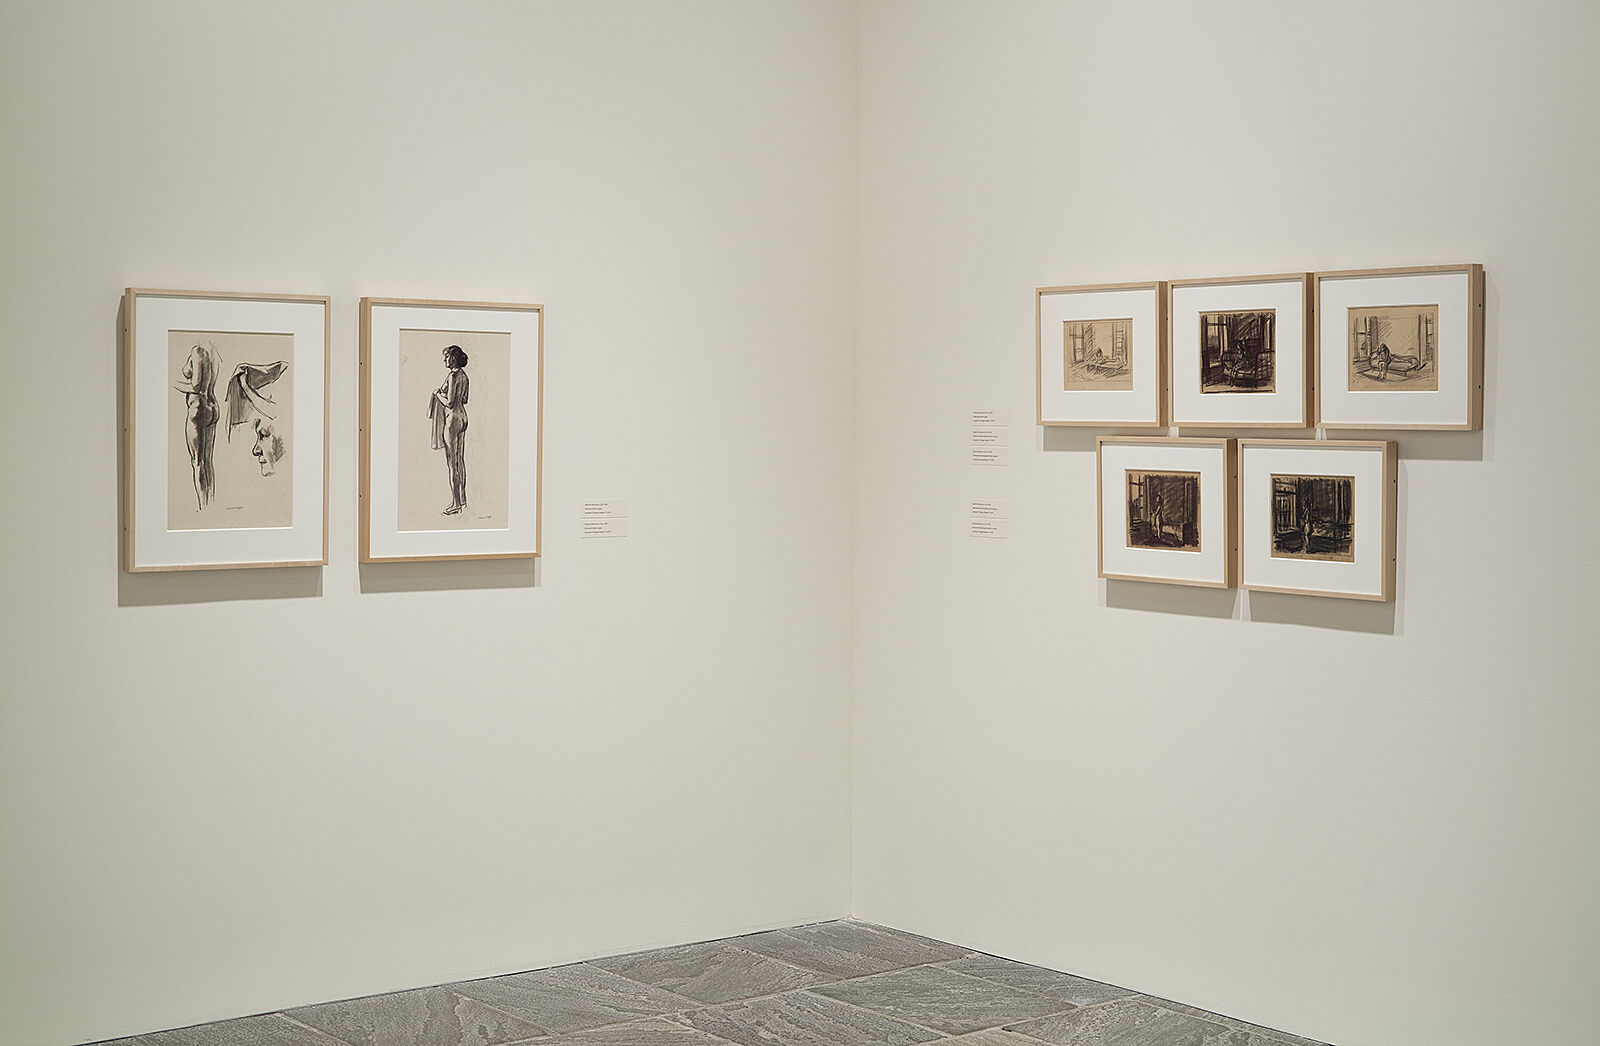 Corner of exhibit with drawings hanging.